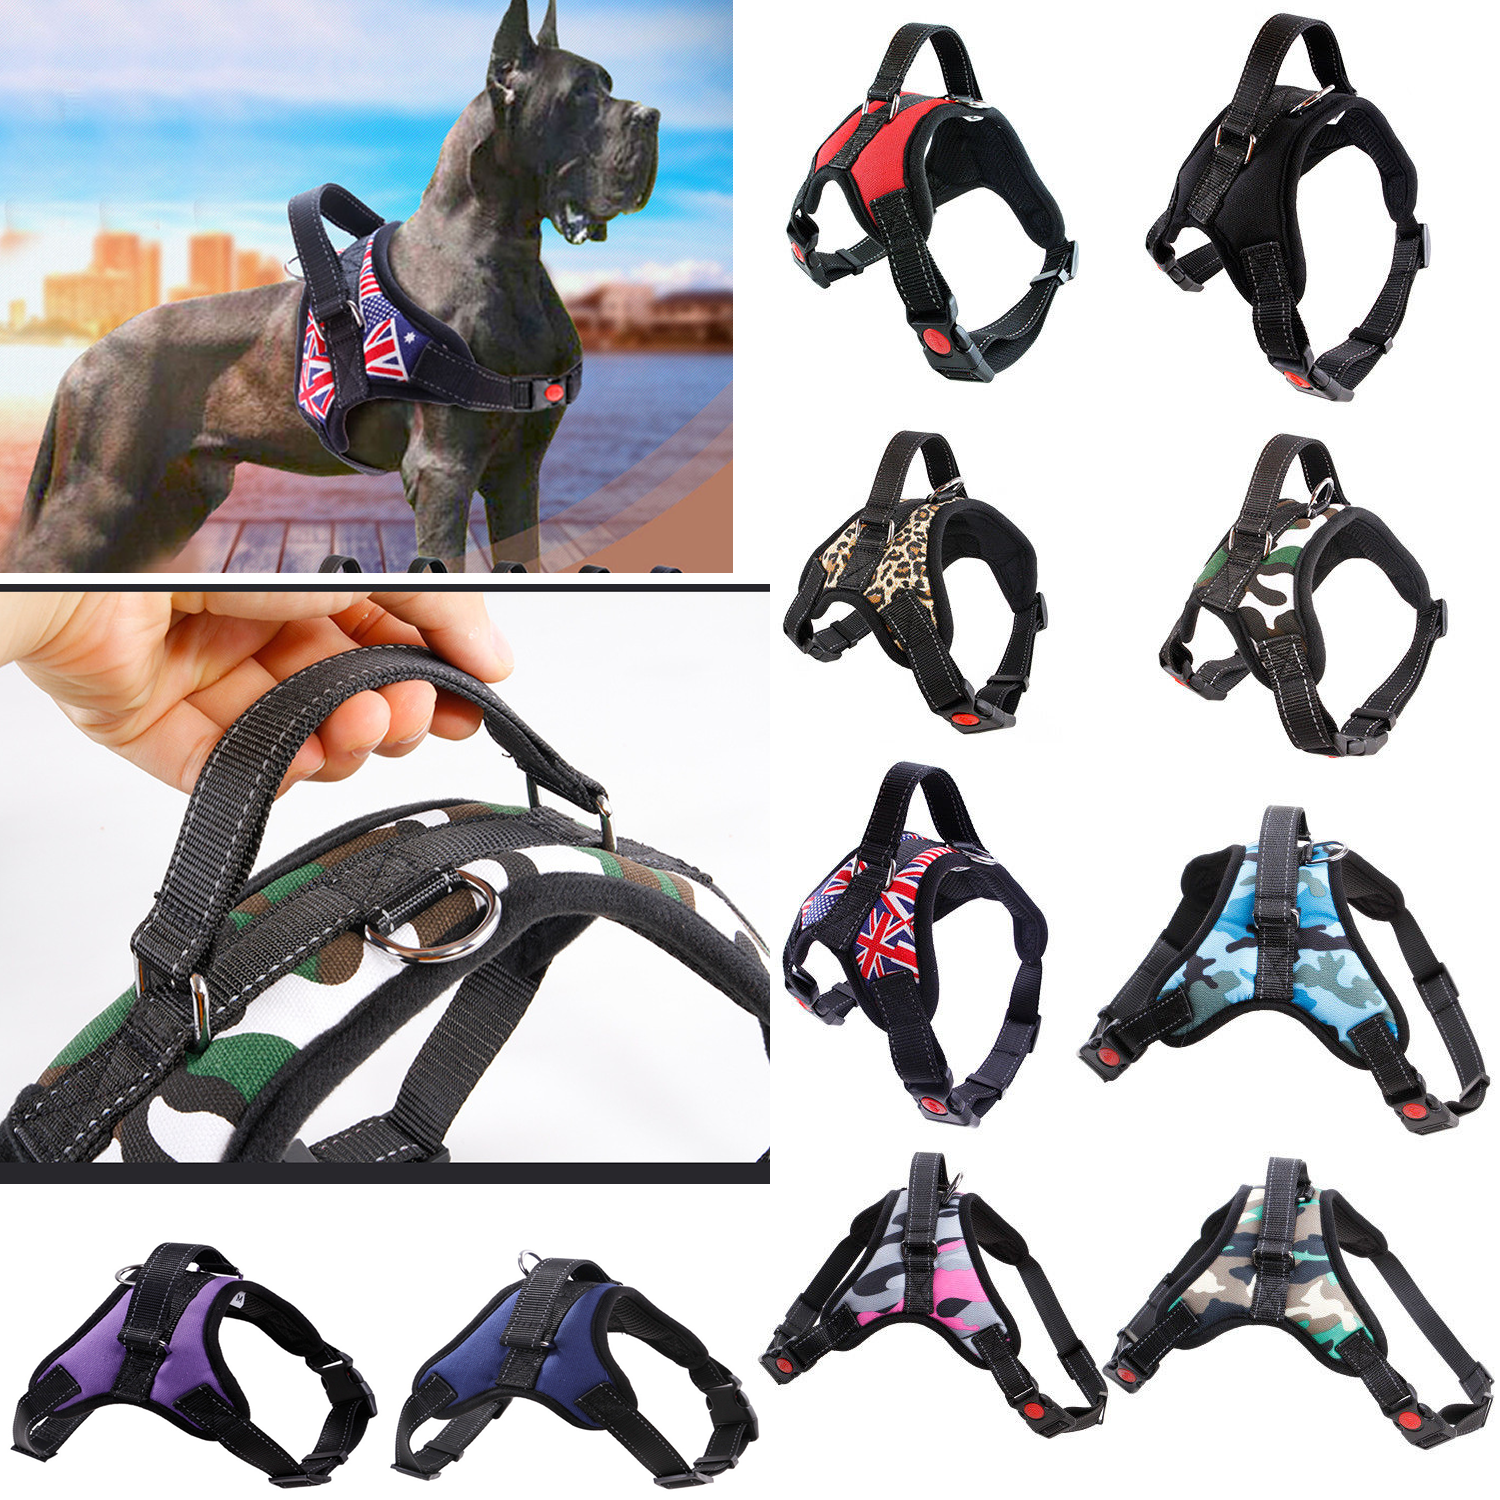 Nylon Heavy Duty Dog Pet Harness Collar K9 Service Padded Extra Big Large Medium Small Dog Harnesses Vest for Dogs Pet Supplies